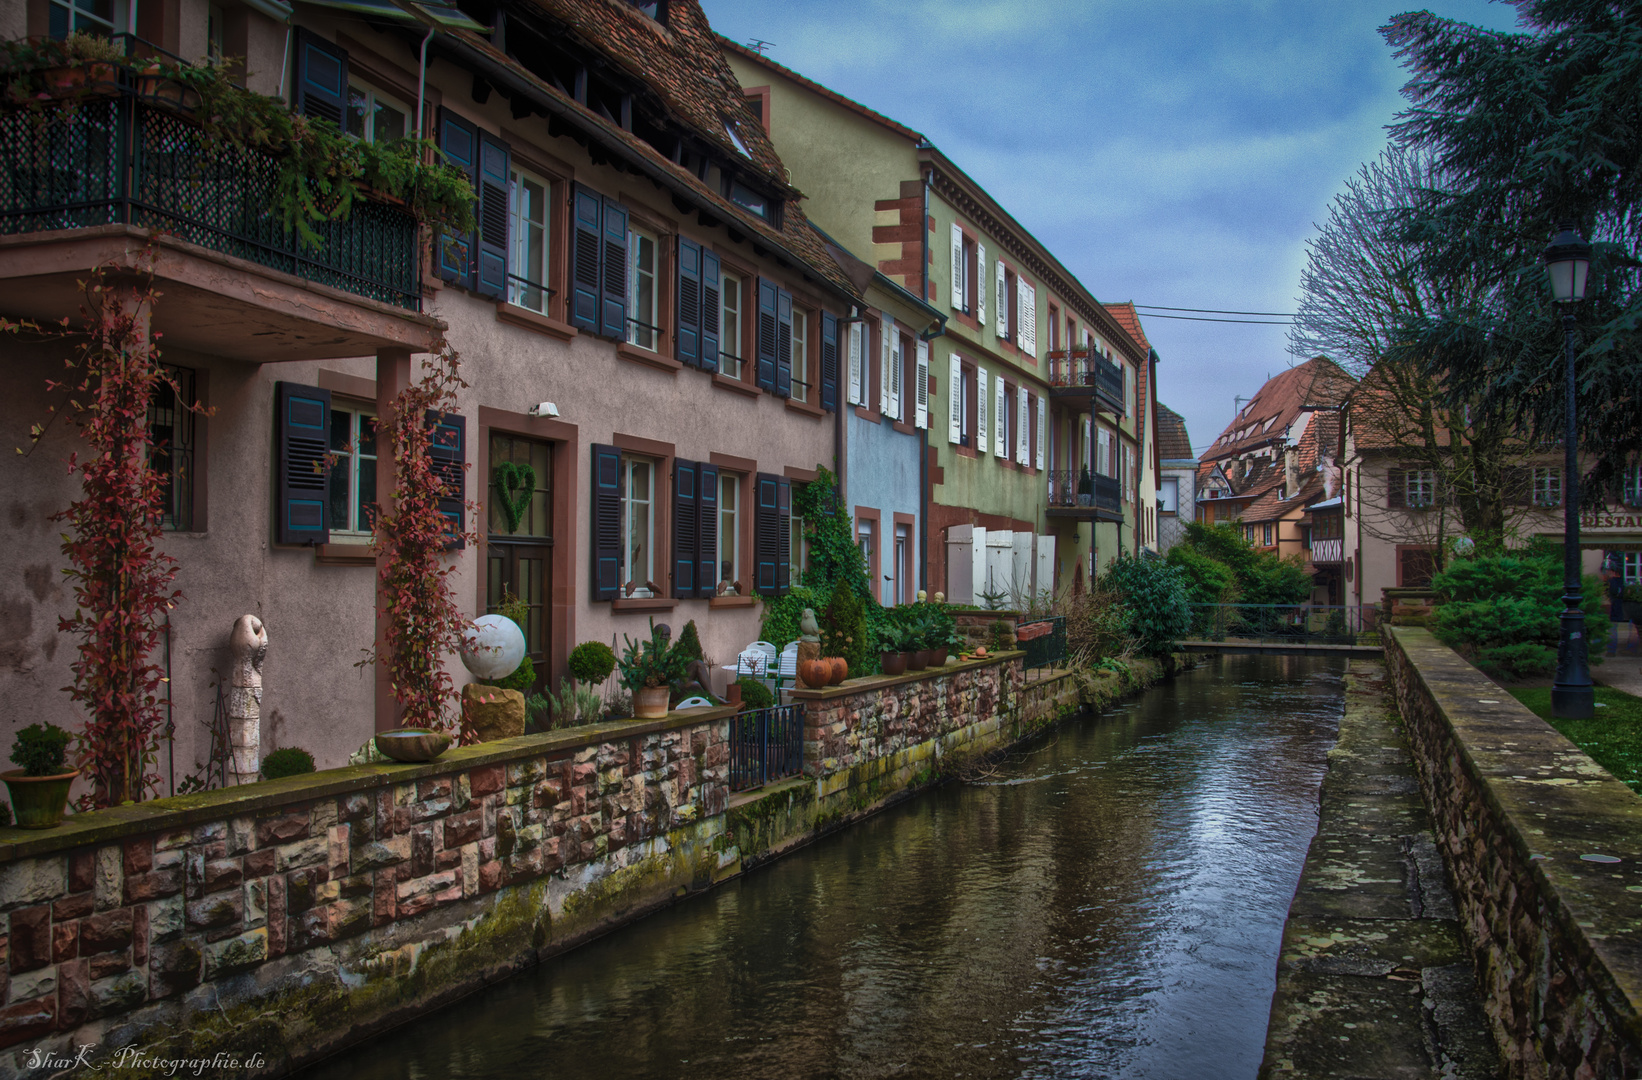 Kanal in Wissembourg